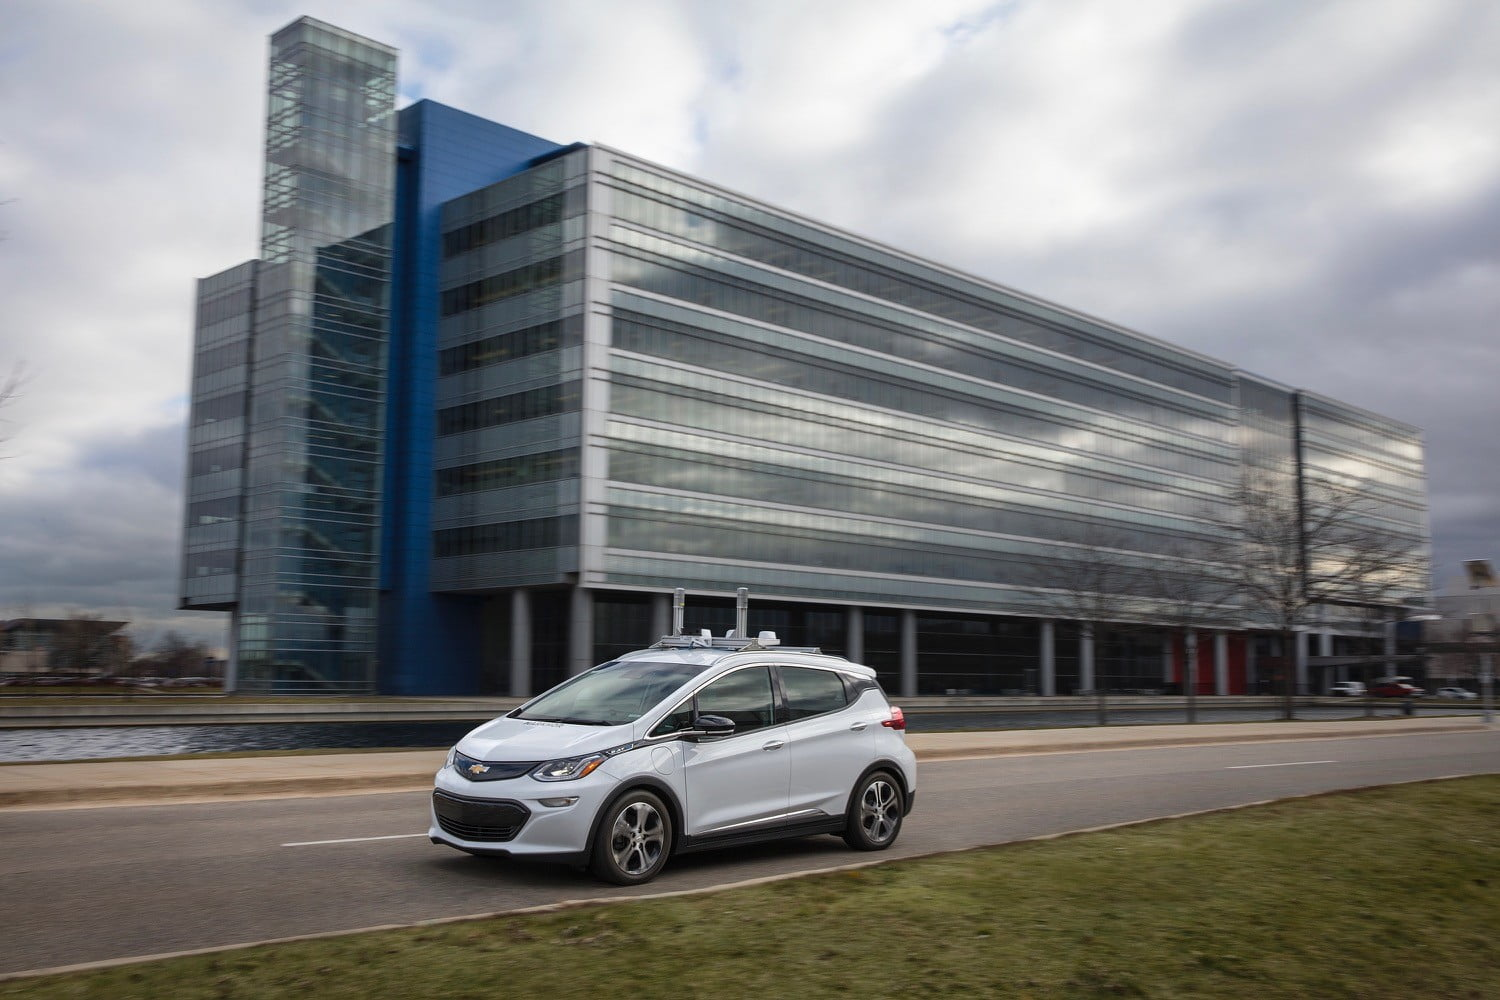 GM Wants Autonomous Vehicles to Cater to Disabled Users